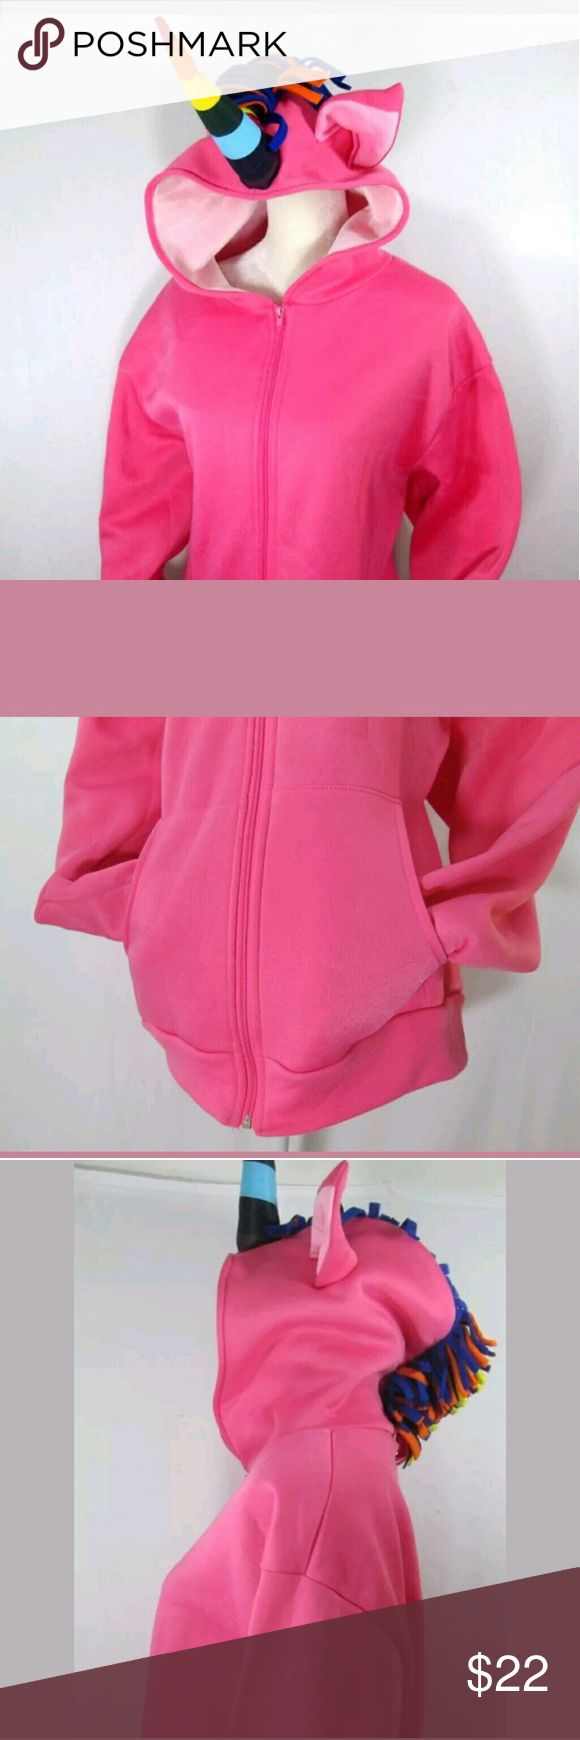 """Unicorn PINK Hoodie Sweatshirt Adult Costume large Unicorn PINK Hoodie Zip Up Sweatshirt Adult Costume  by Rasta Imposta  Size Large  Front Pockets  Cute ears on hood  Horn and mane bright multi colors  Zips up  Hoodie has never been worn. There is a little spot on the shoulder (please see picture) Otherwise its in great condition!  Measurements:  arms: 25""""  Length: 27.5""""  armpit to armpit: 24""""  Please ask any questions.  Thanks for looking! Other"""